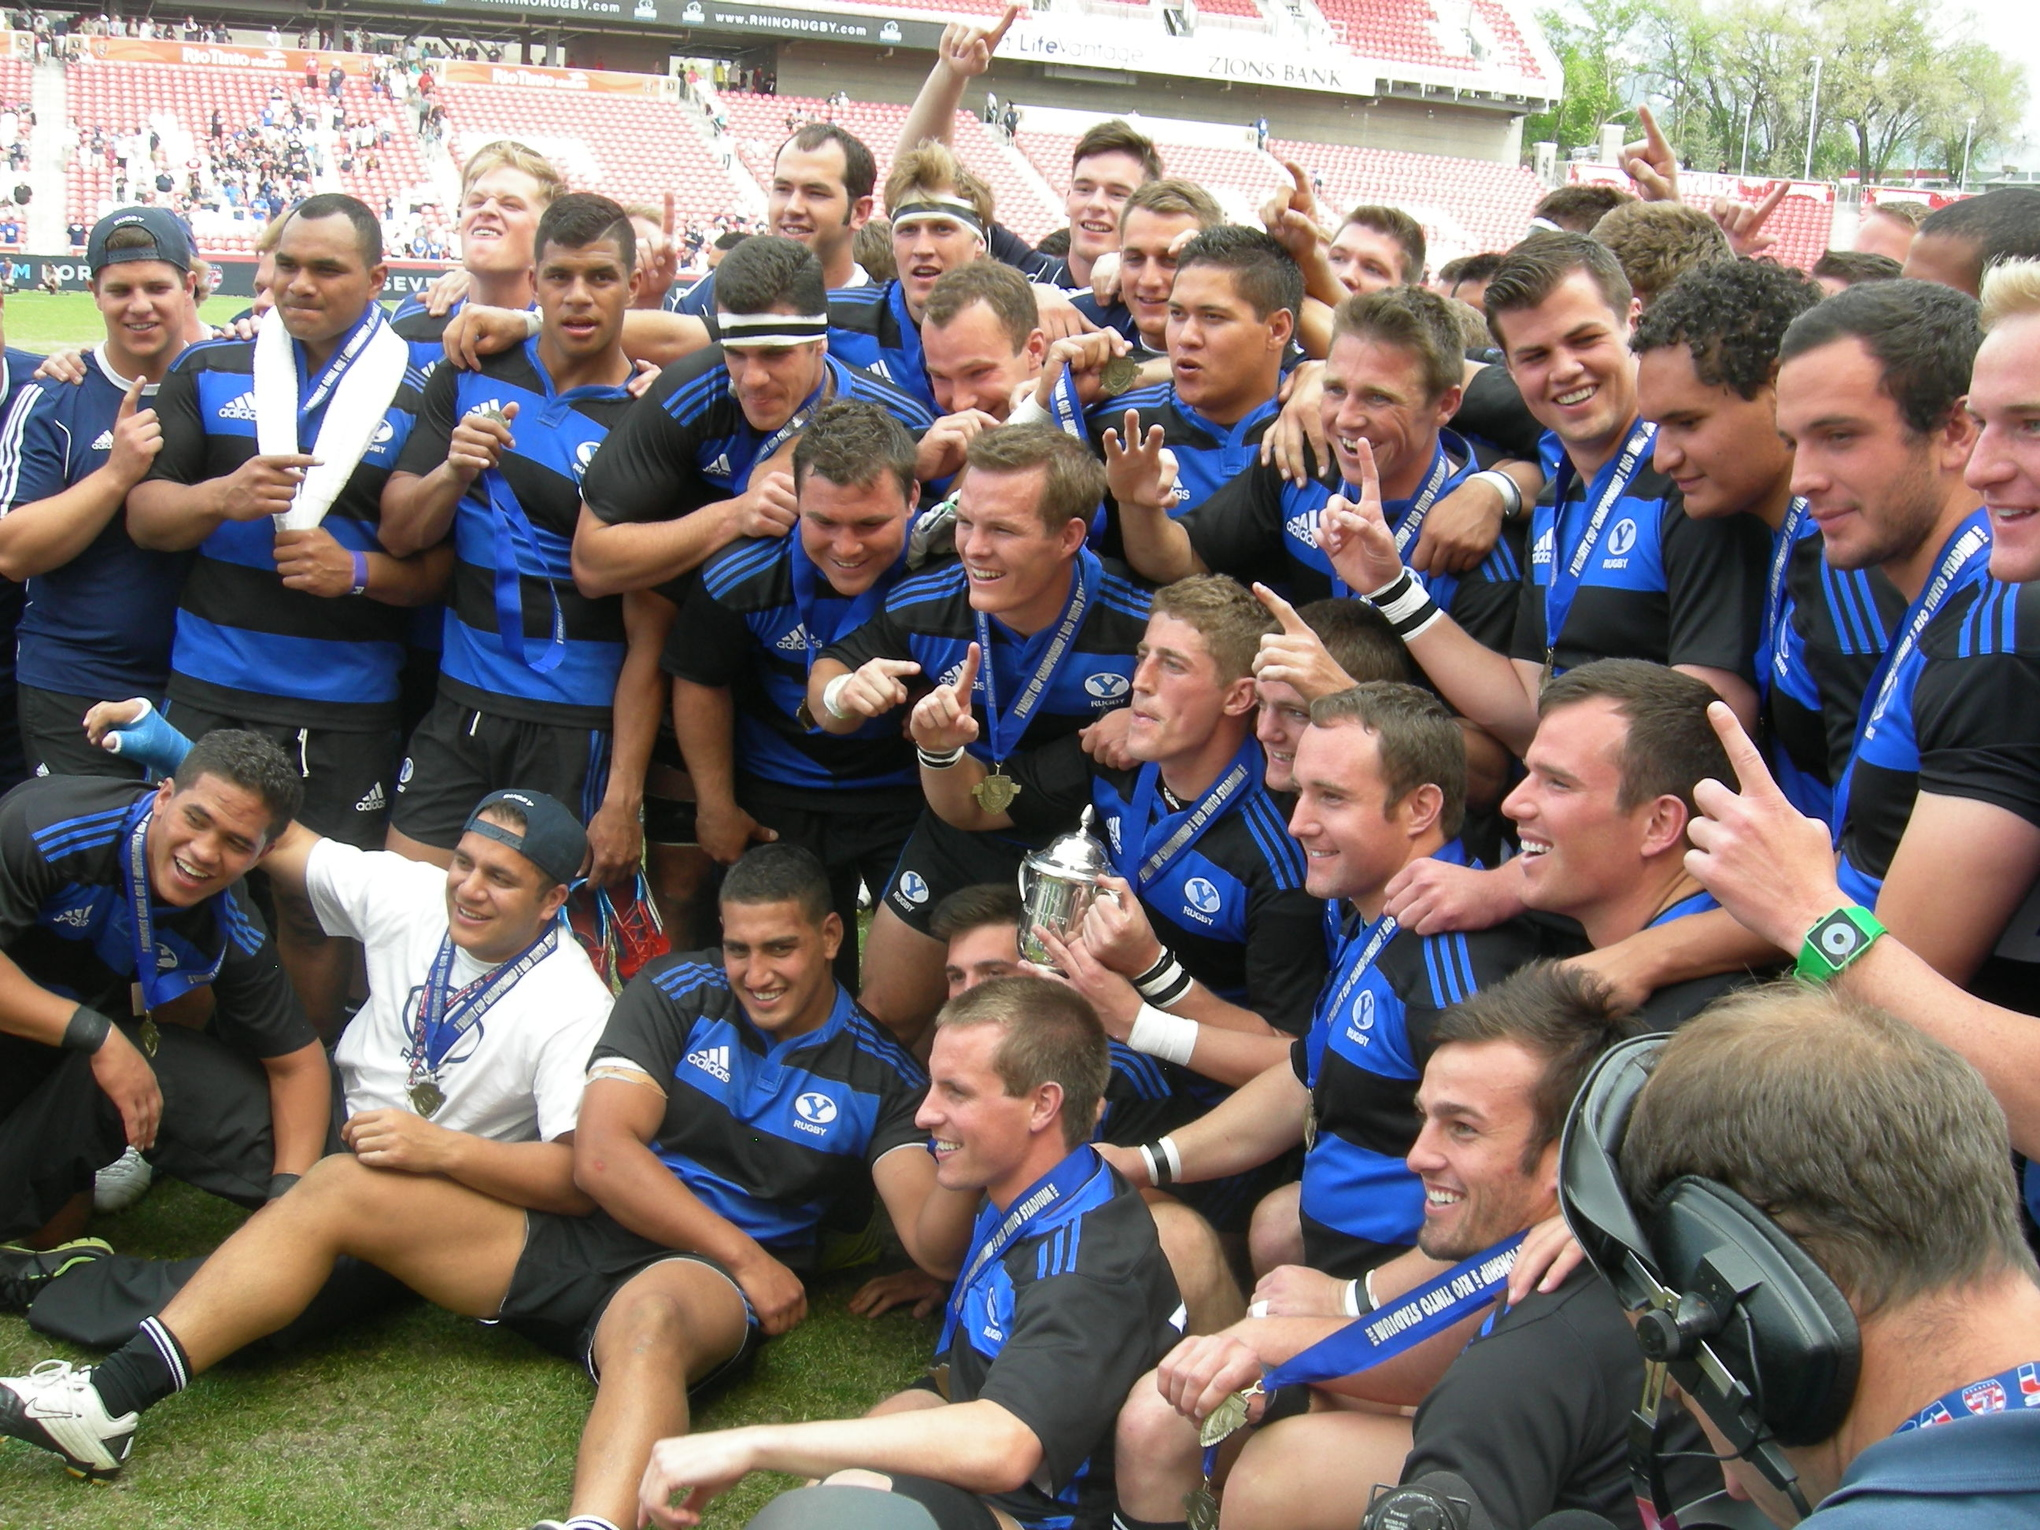 The winners of the Varsity Cup last year will be home next week.